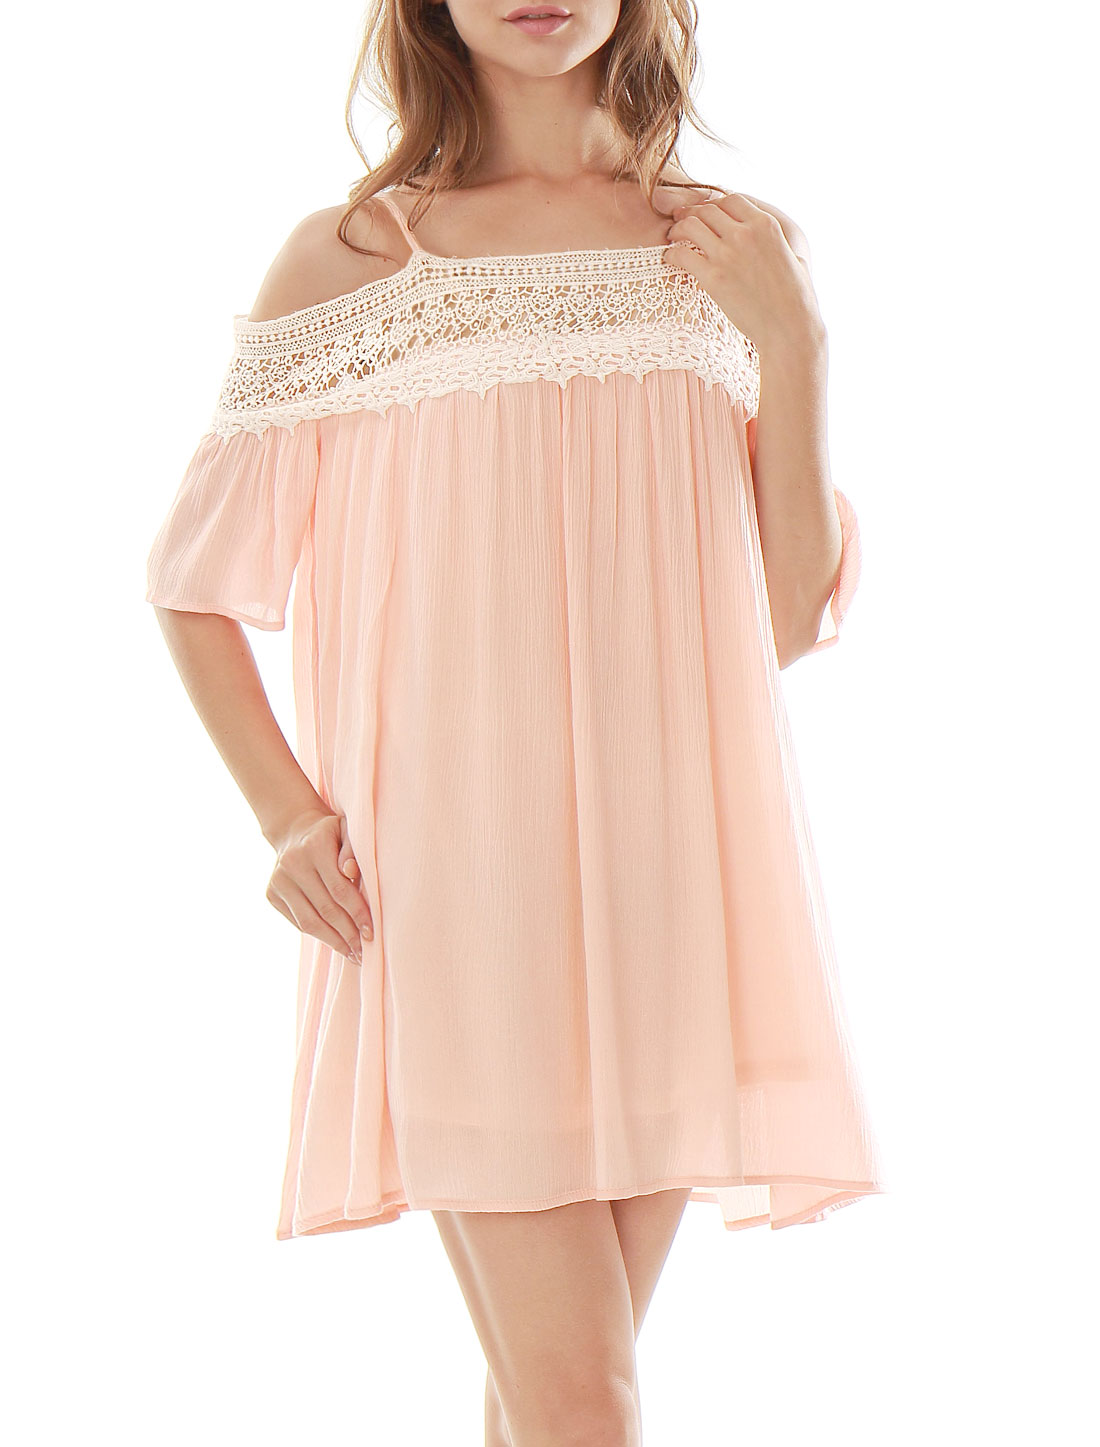 Women Crochet Panel Spaghetti Strap Cold Shoulder Dress Pink XS